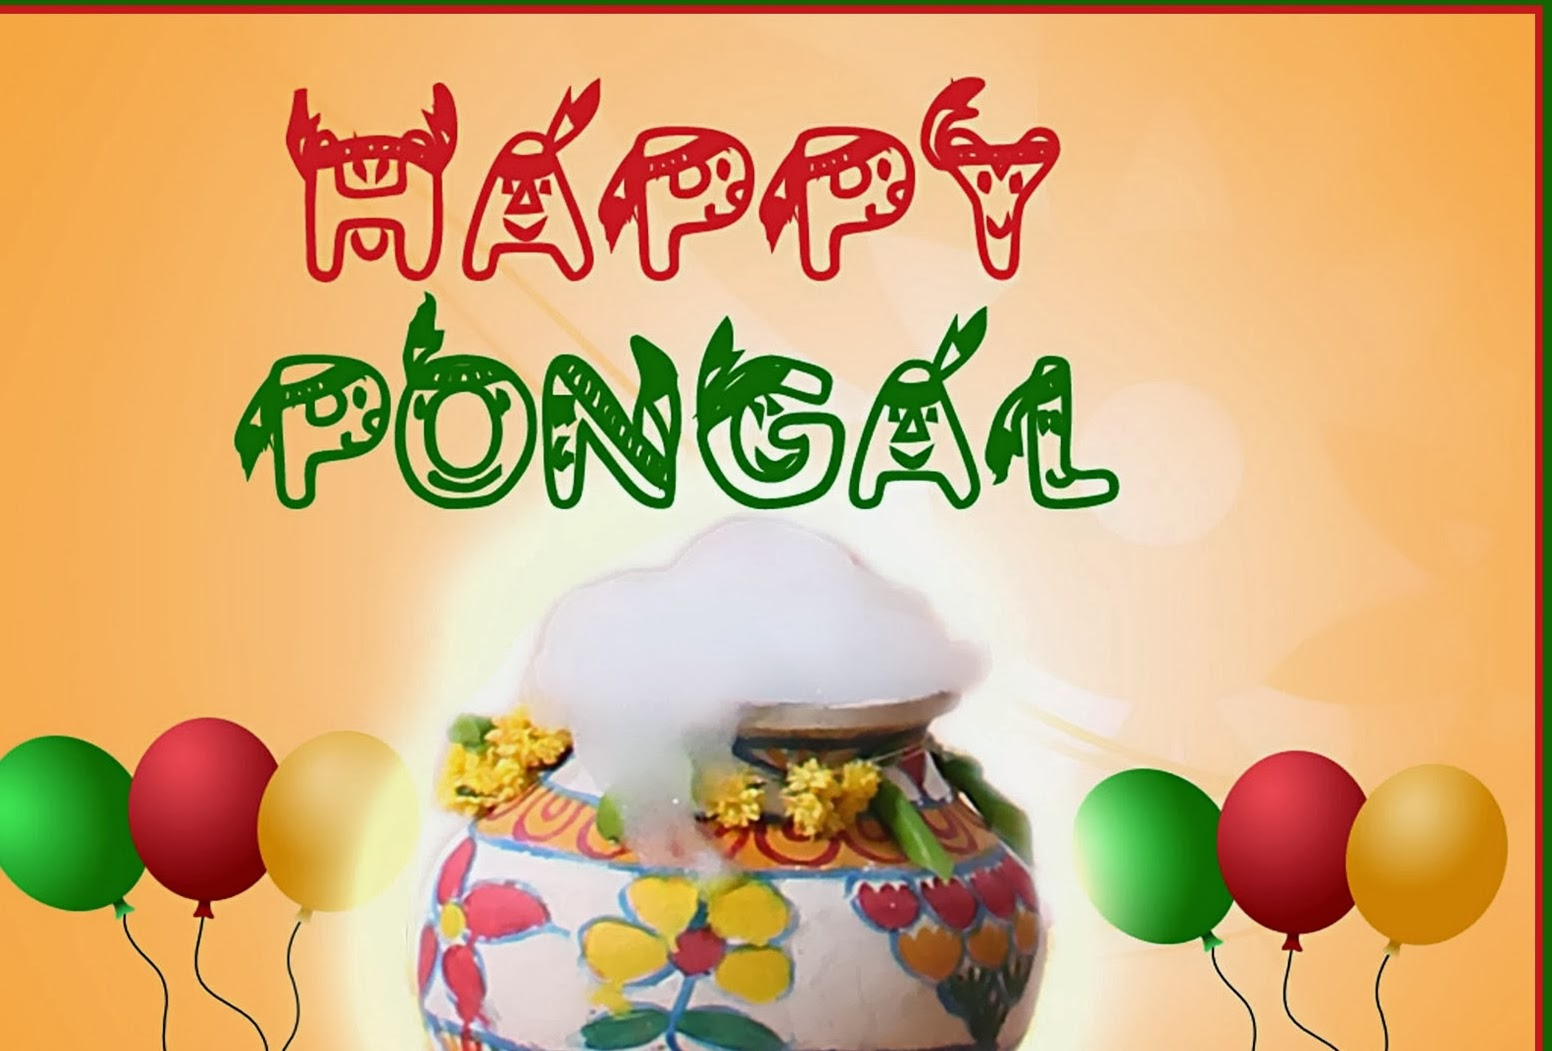 happy pongal day greeting cards  pongal greetings cards